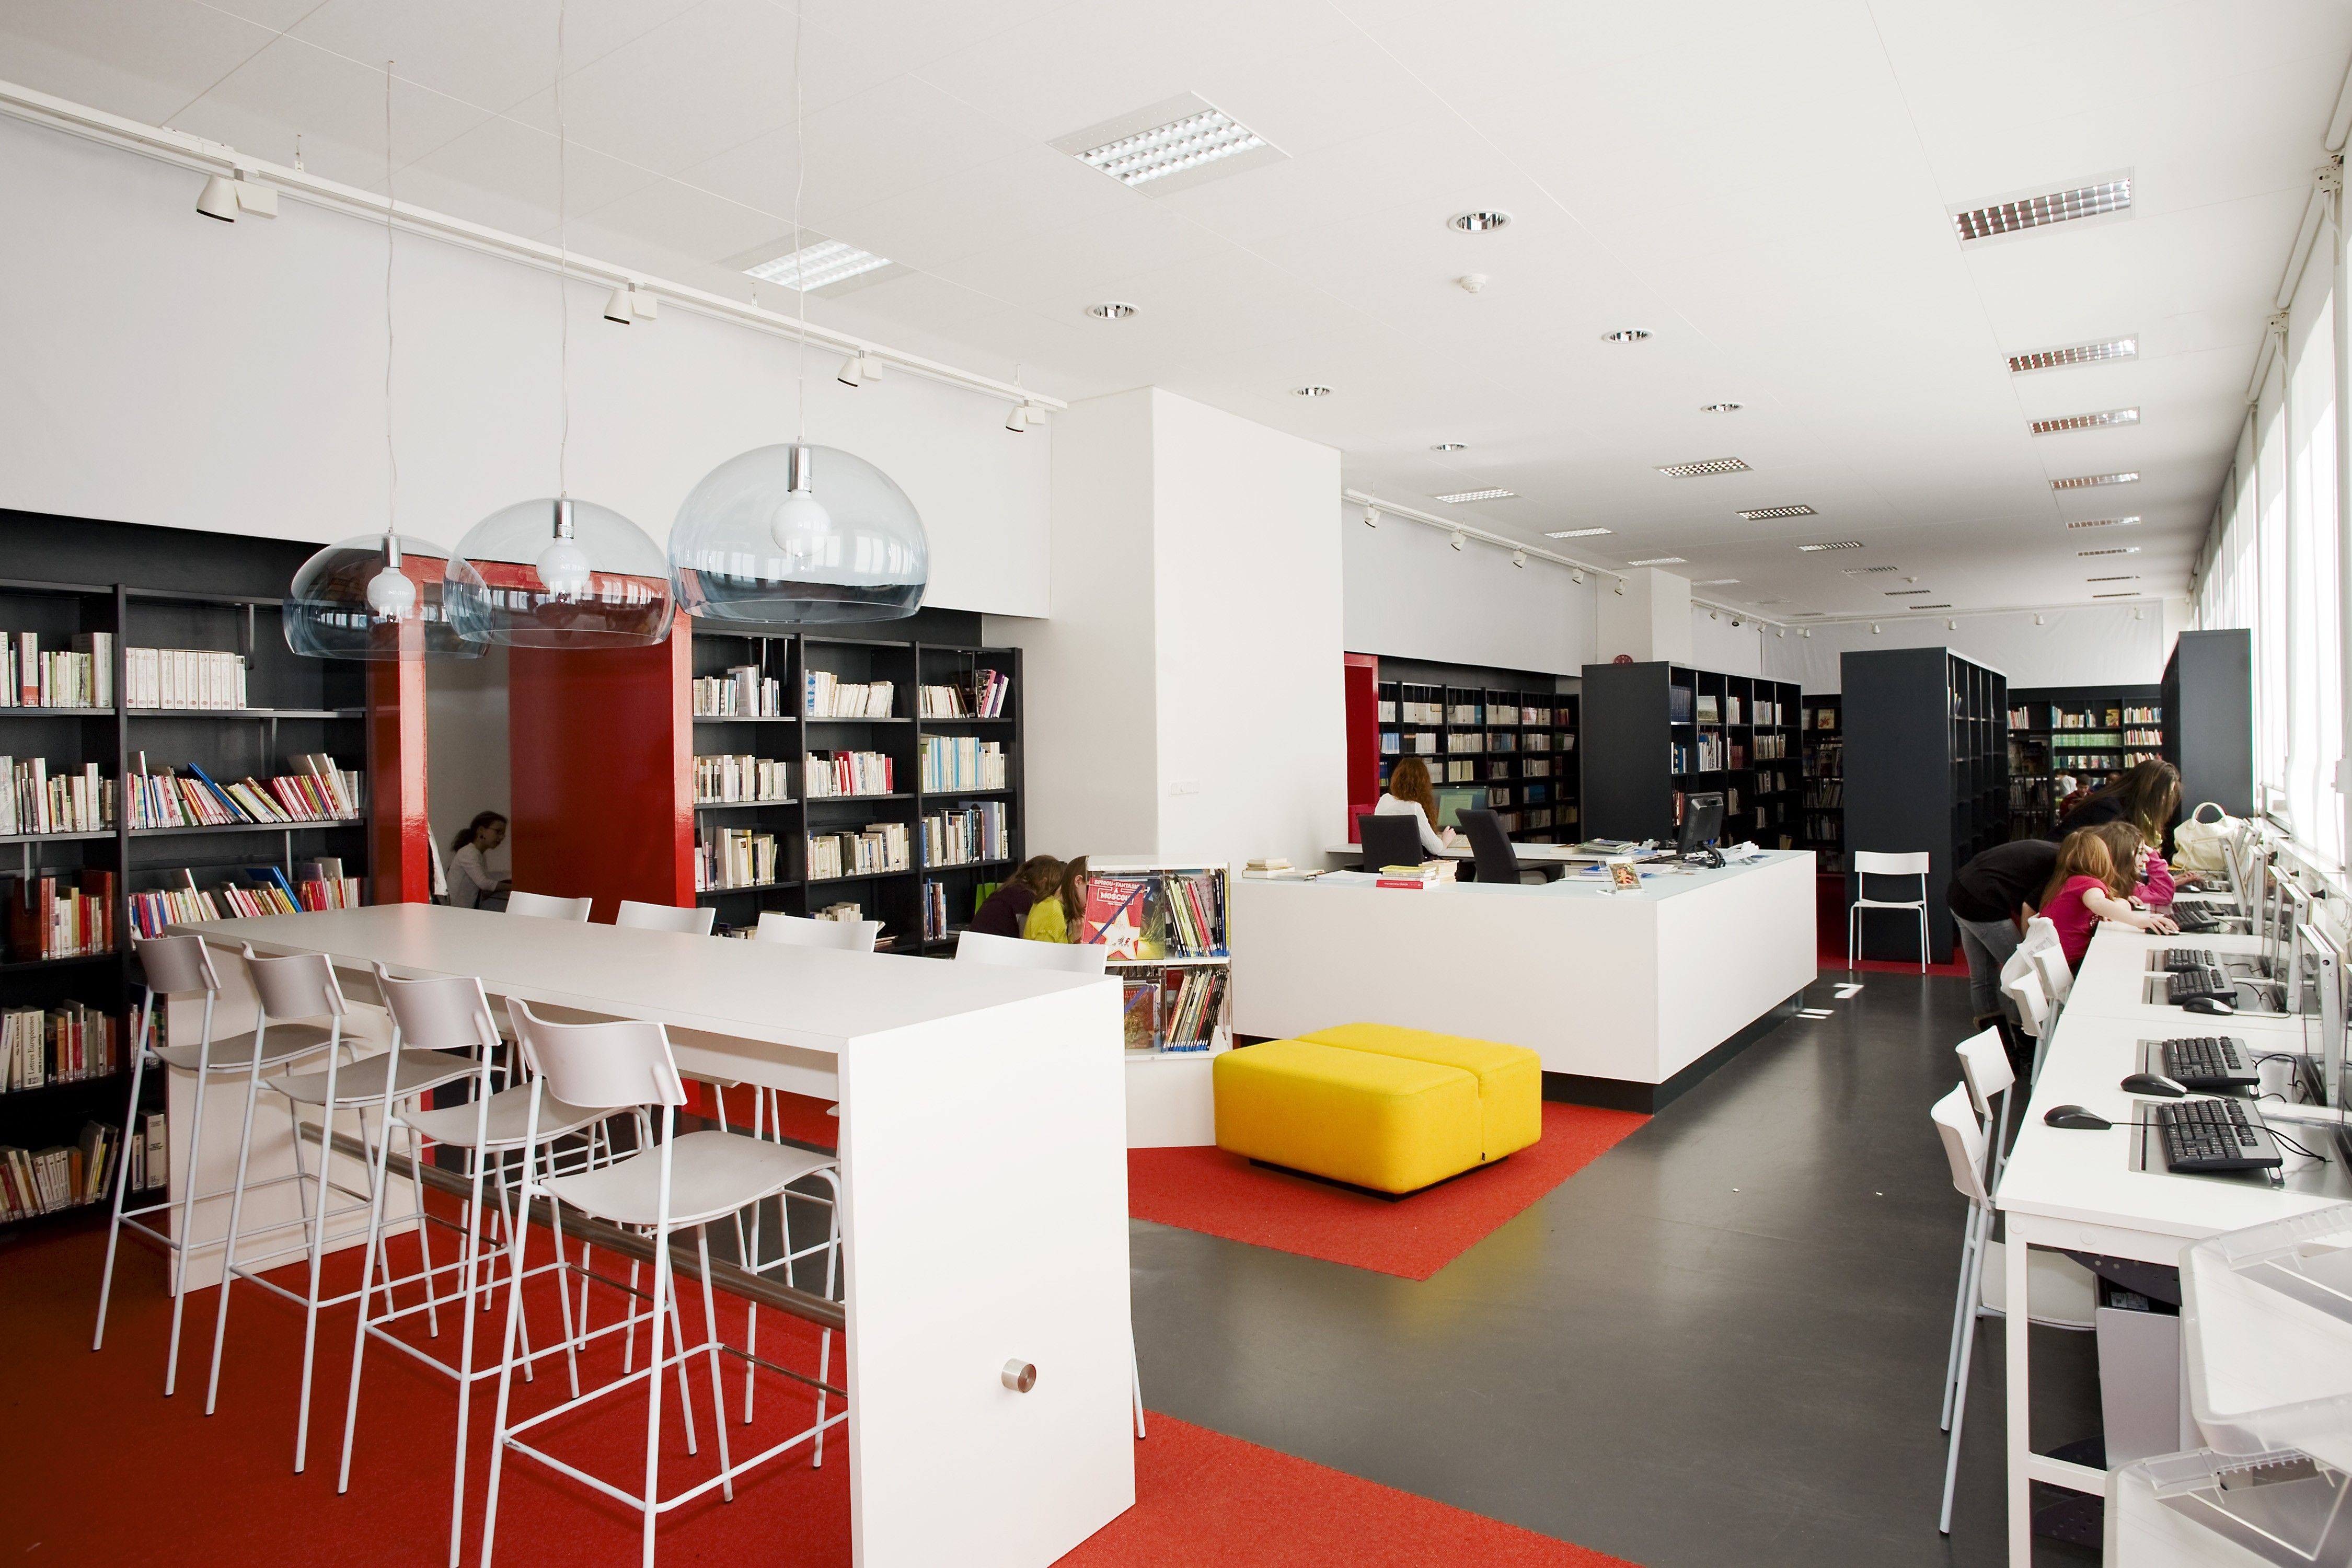 About Modern Library Library Furniture Design Library Design Hotel Interior Design